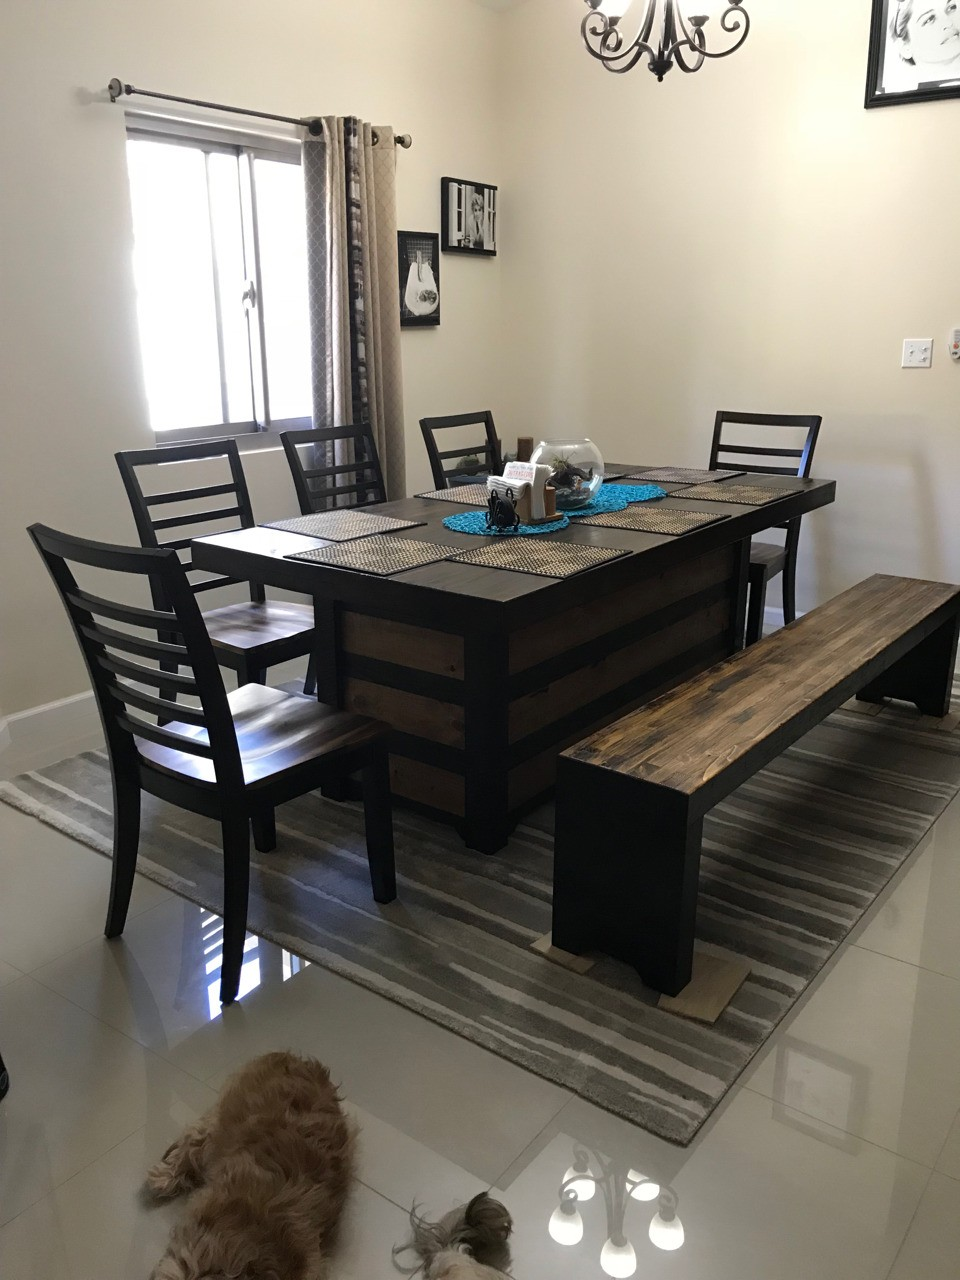 Dining Table w/bench. Base is reversible with an aging finish. Stained dark walnut, golden oak and Jacobean. Bees wax to finish off. Chairs by Ashley.